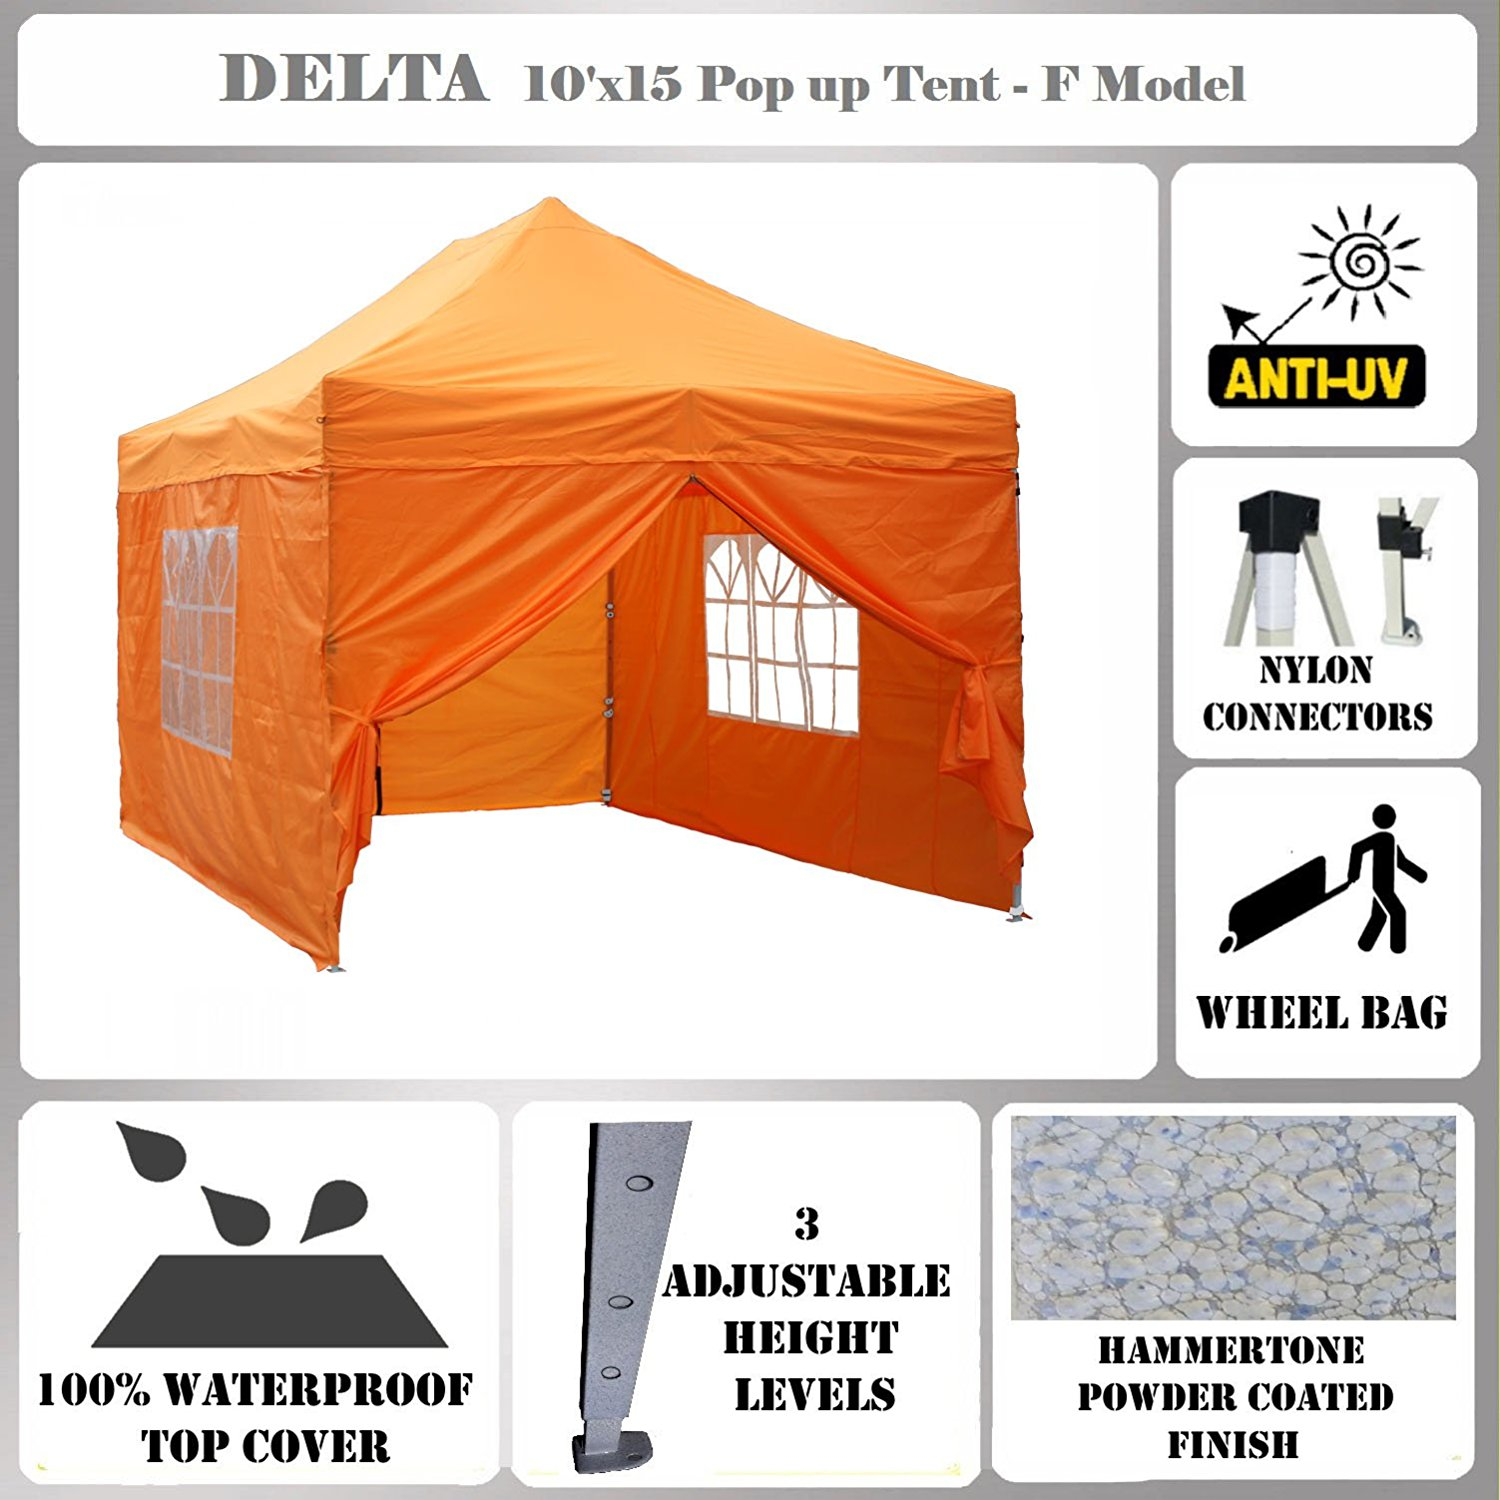 10'x15' Pop up Canopy Wedding Party Tent Gazebo EZ UP Orange - F Model Commercial Frame By DELTA Canopies